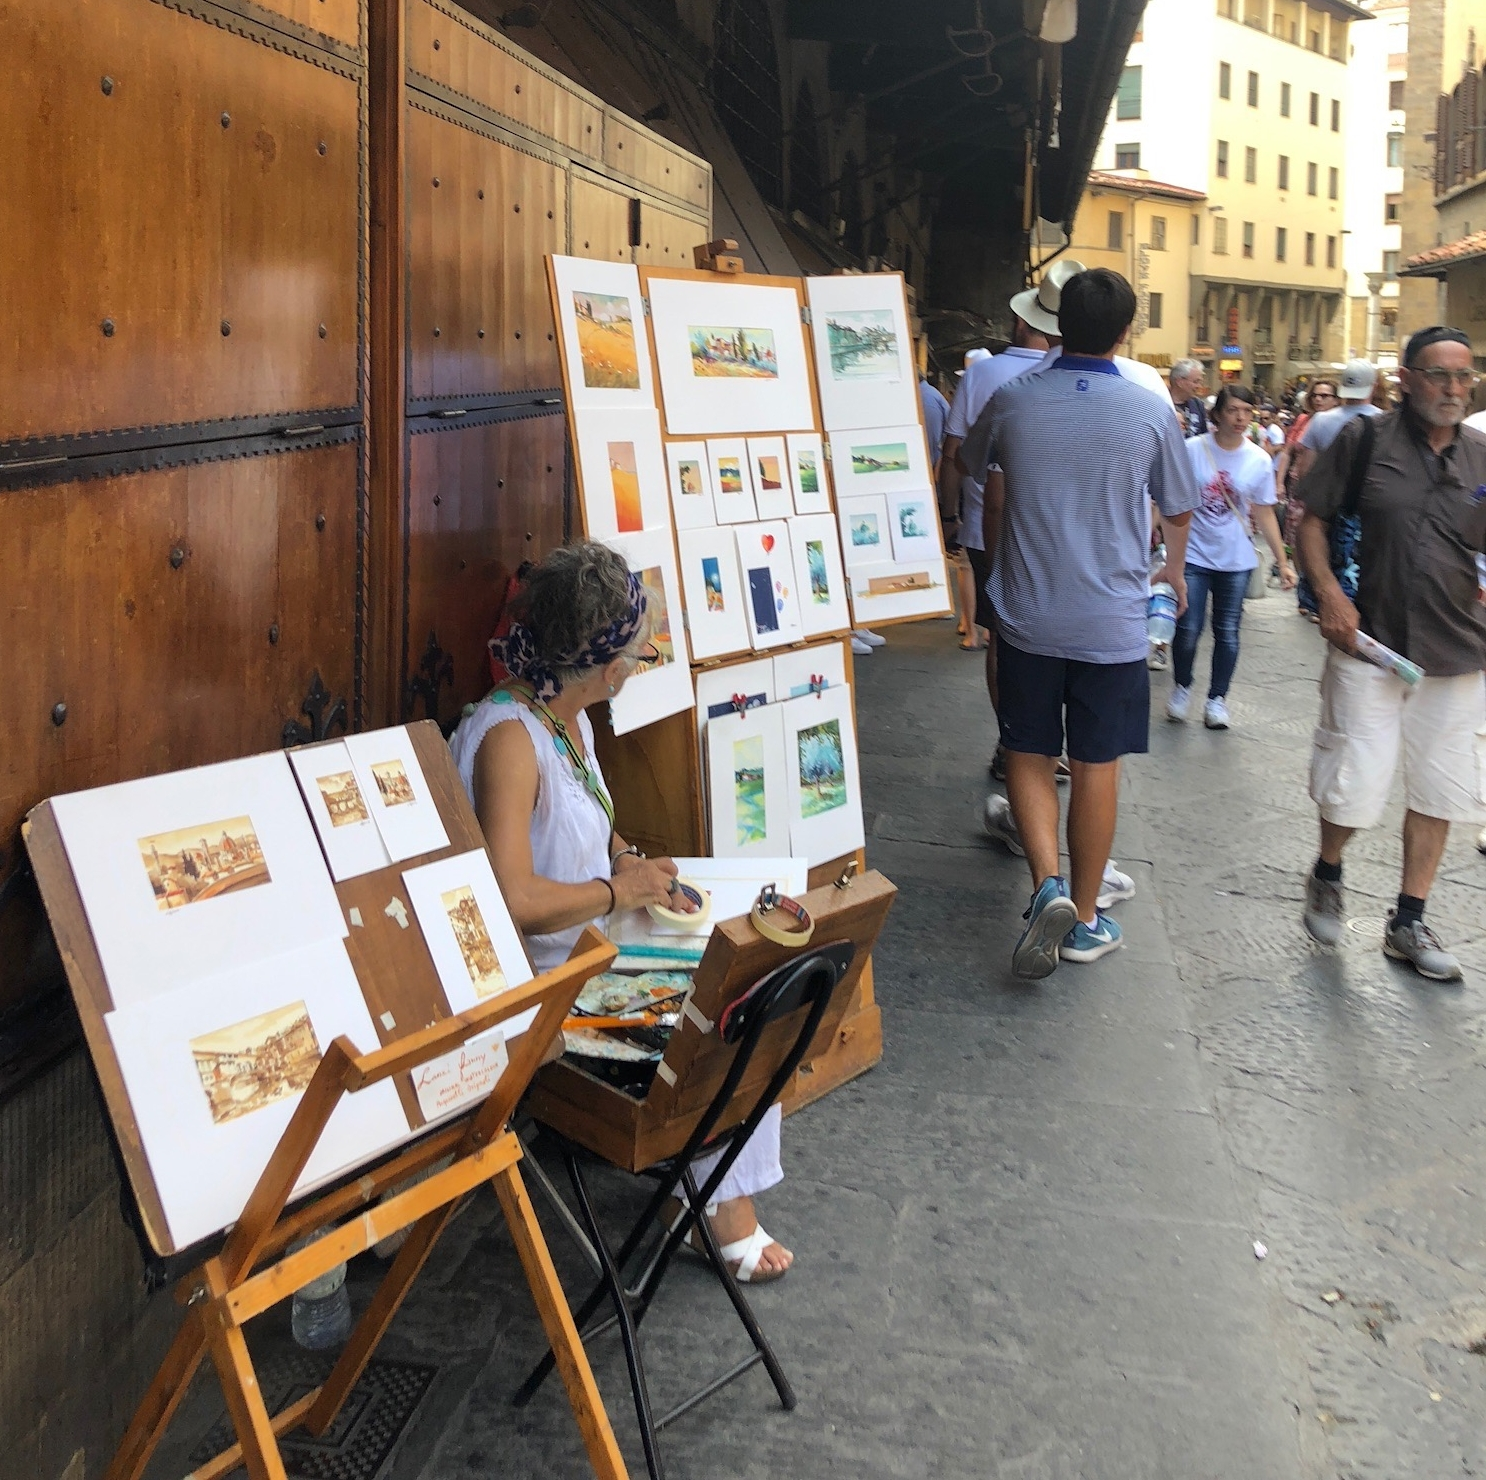 A painter displayed her works that are stowed in these wooden cabinets outside in the artisan district.